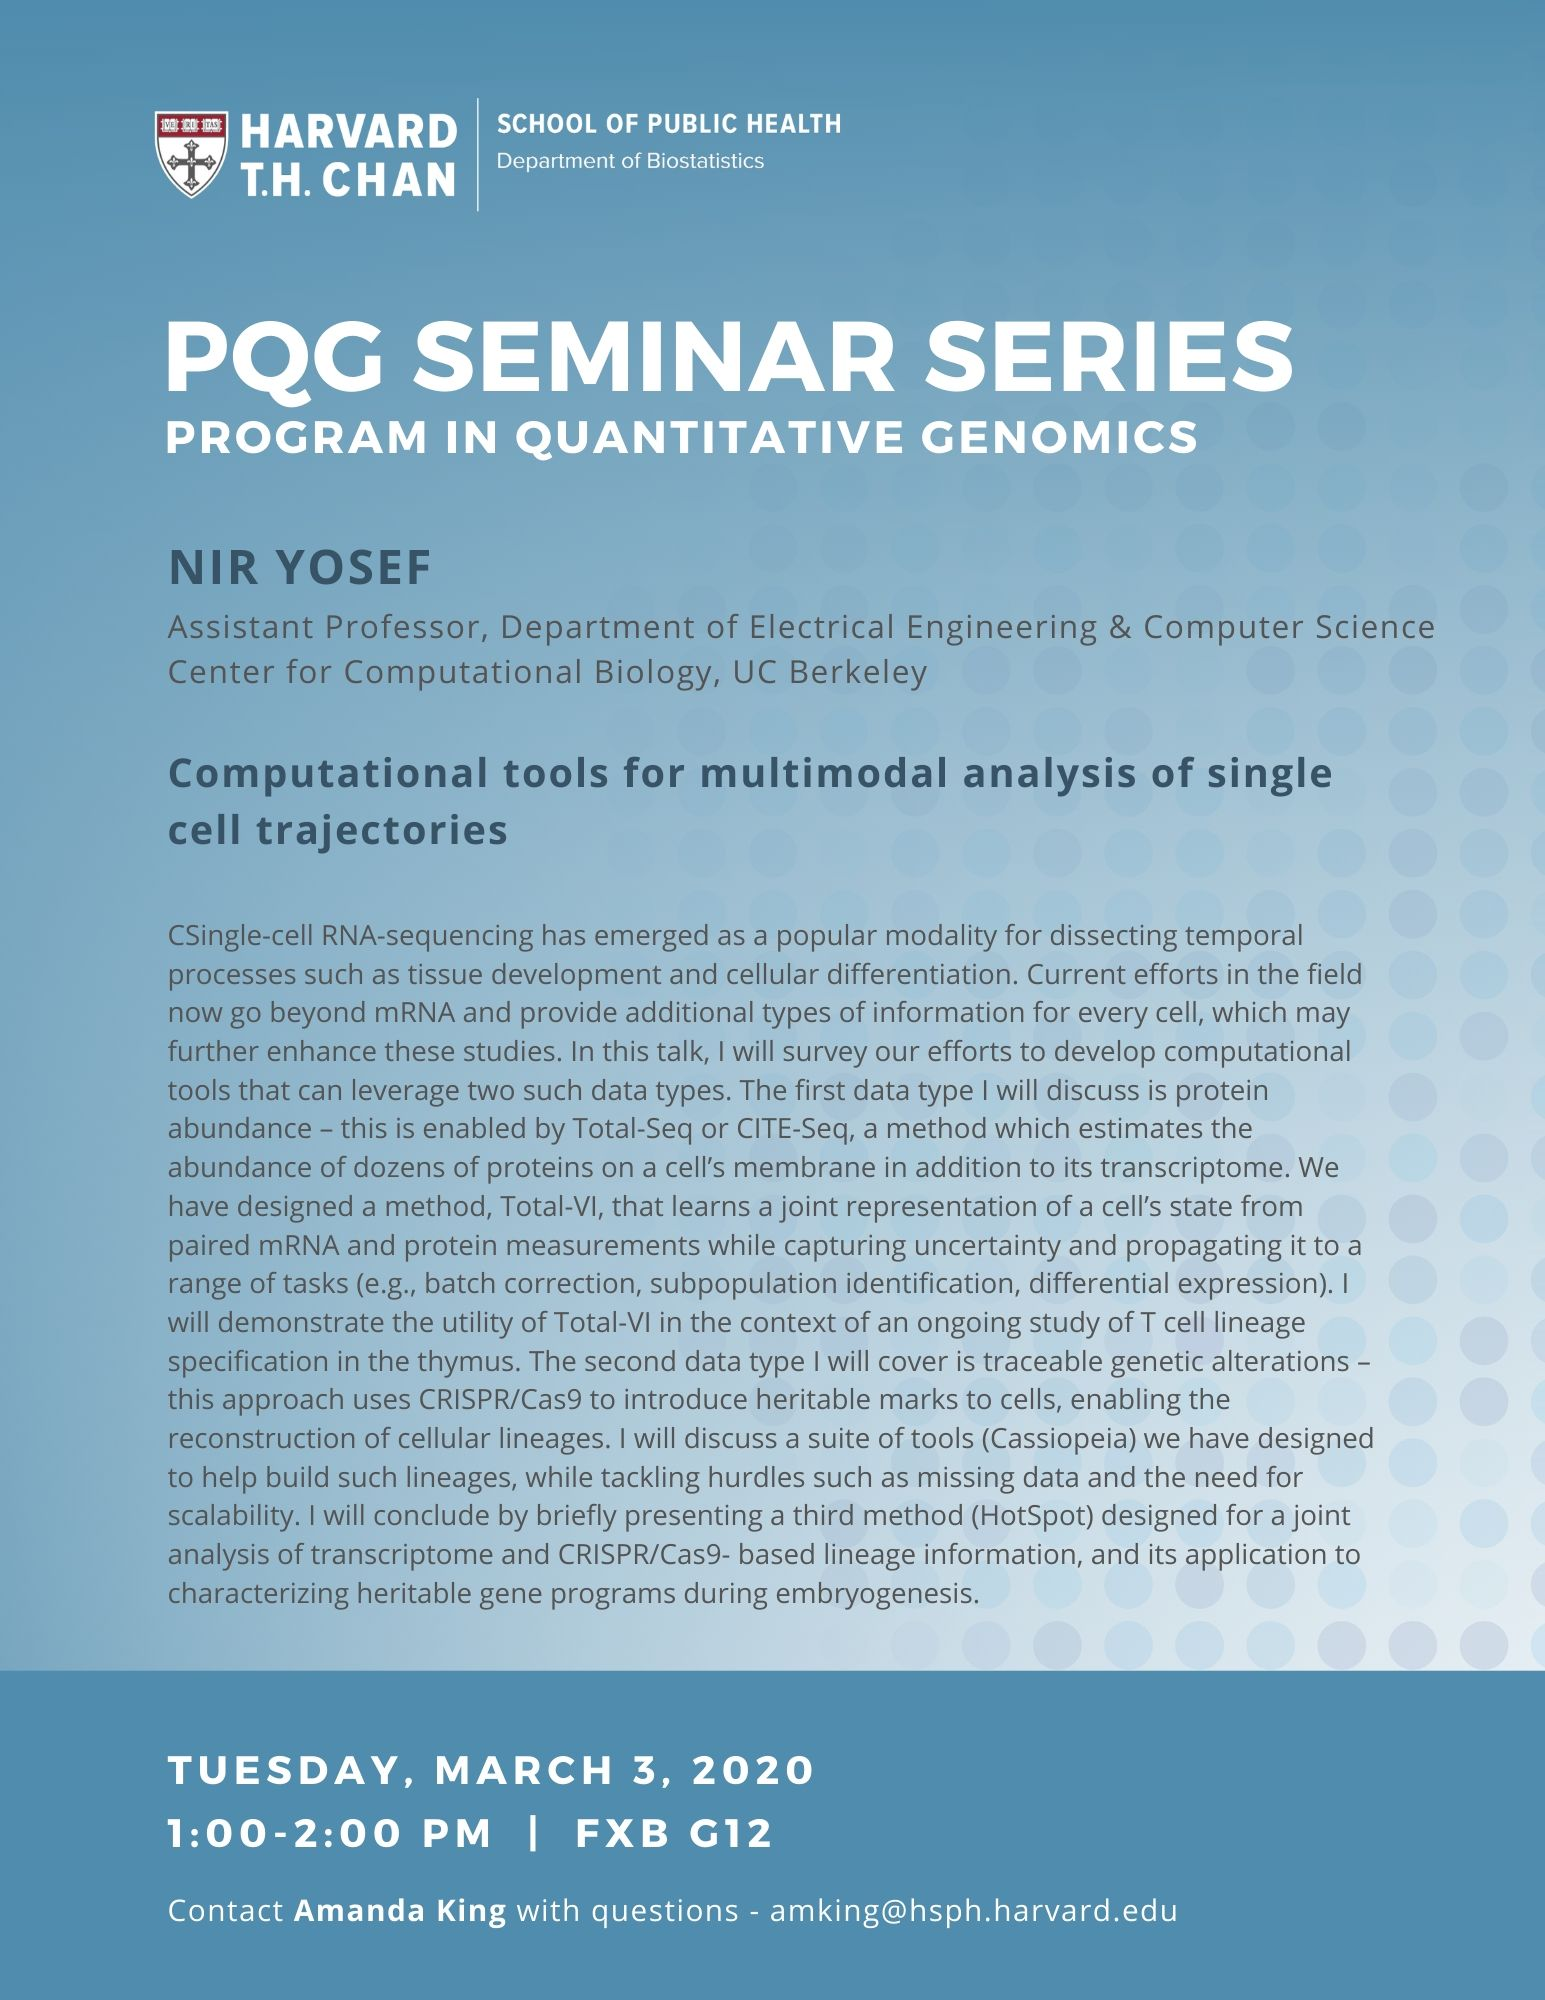 PQG Seminar with Nir Yosef